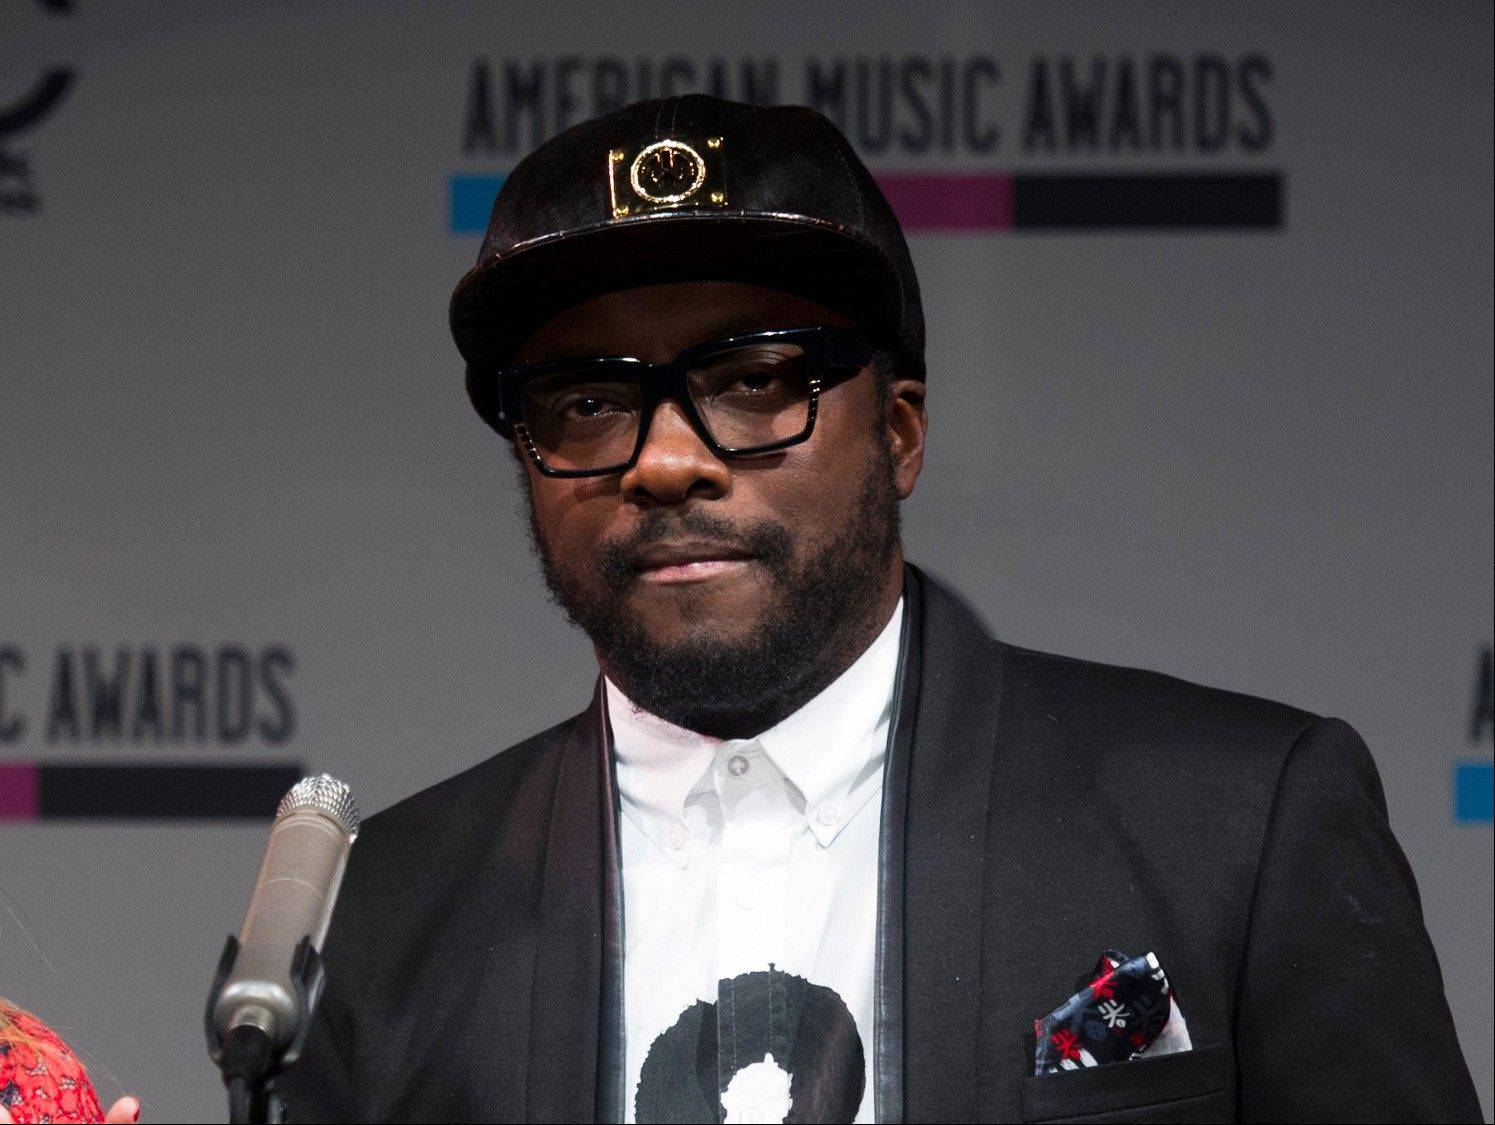 Will.i.am is executive producing Britney Spears' eighth album, to be released Dec. 3.